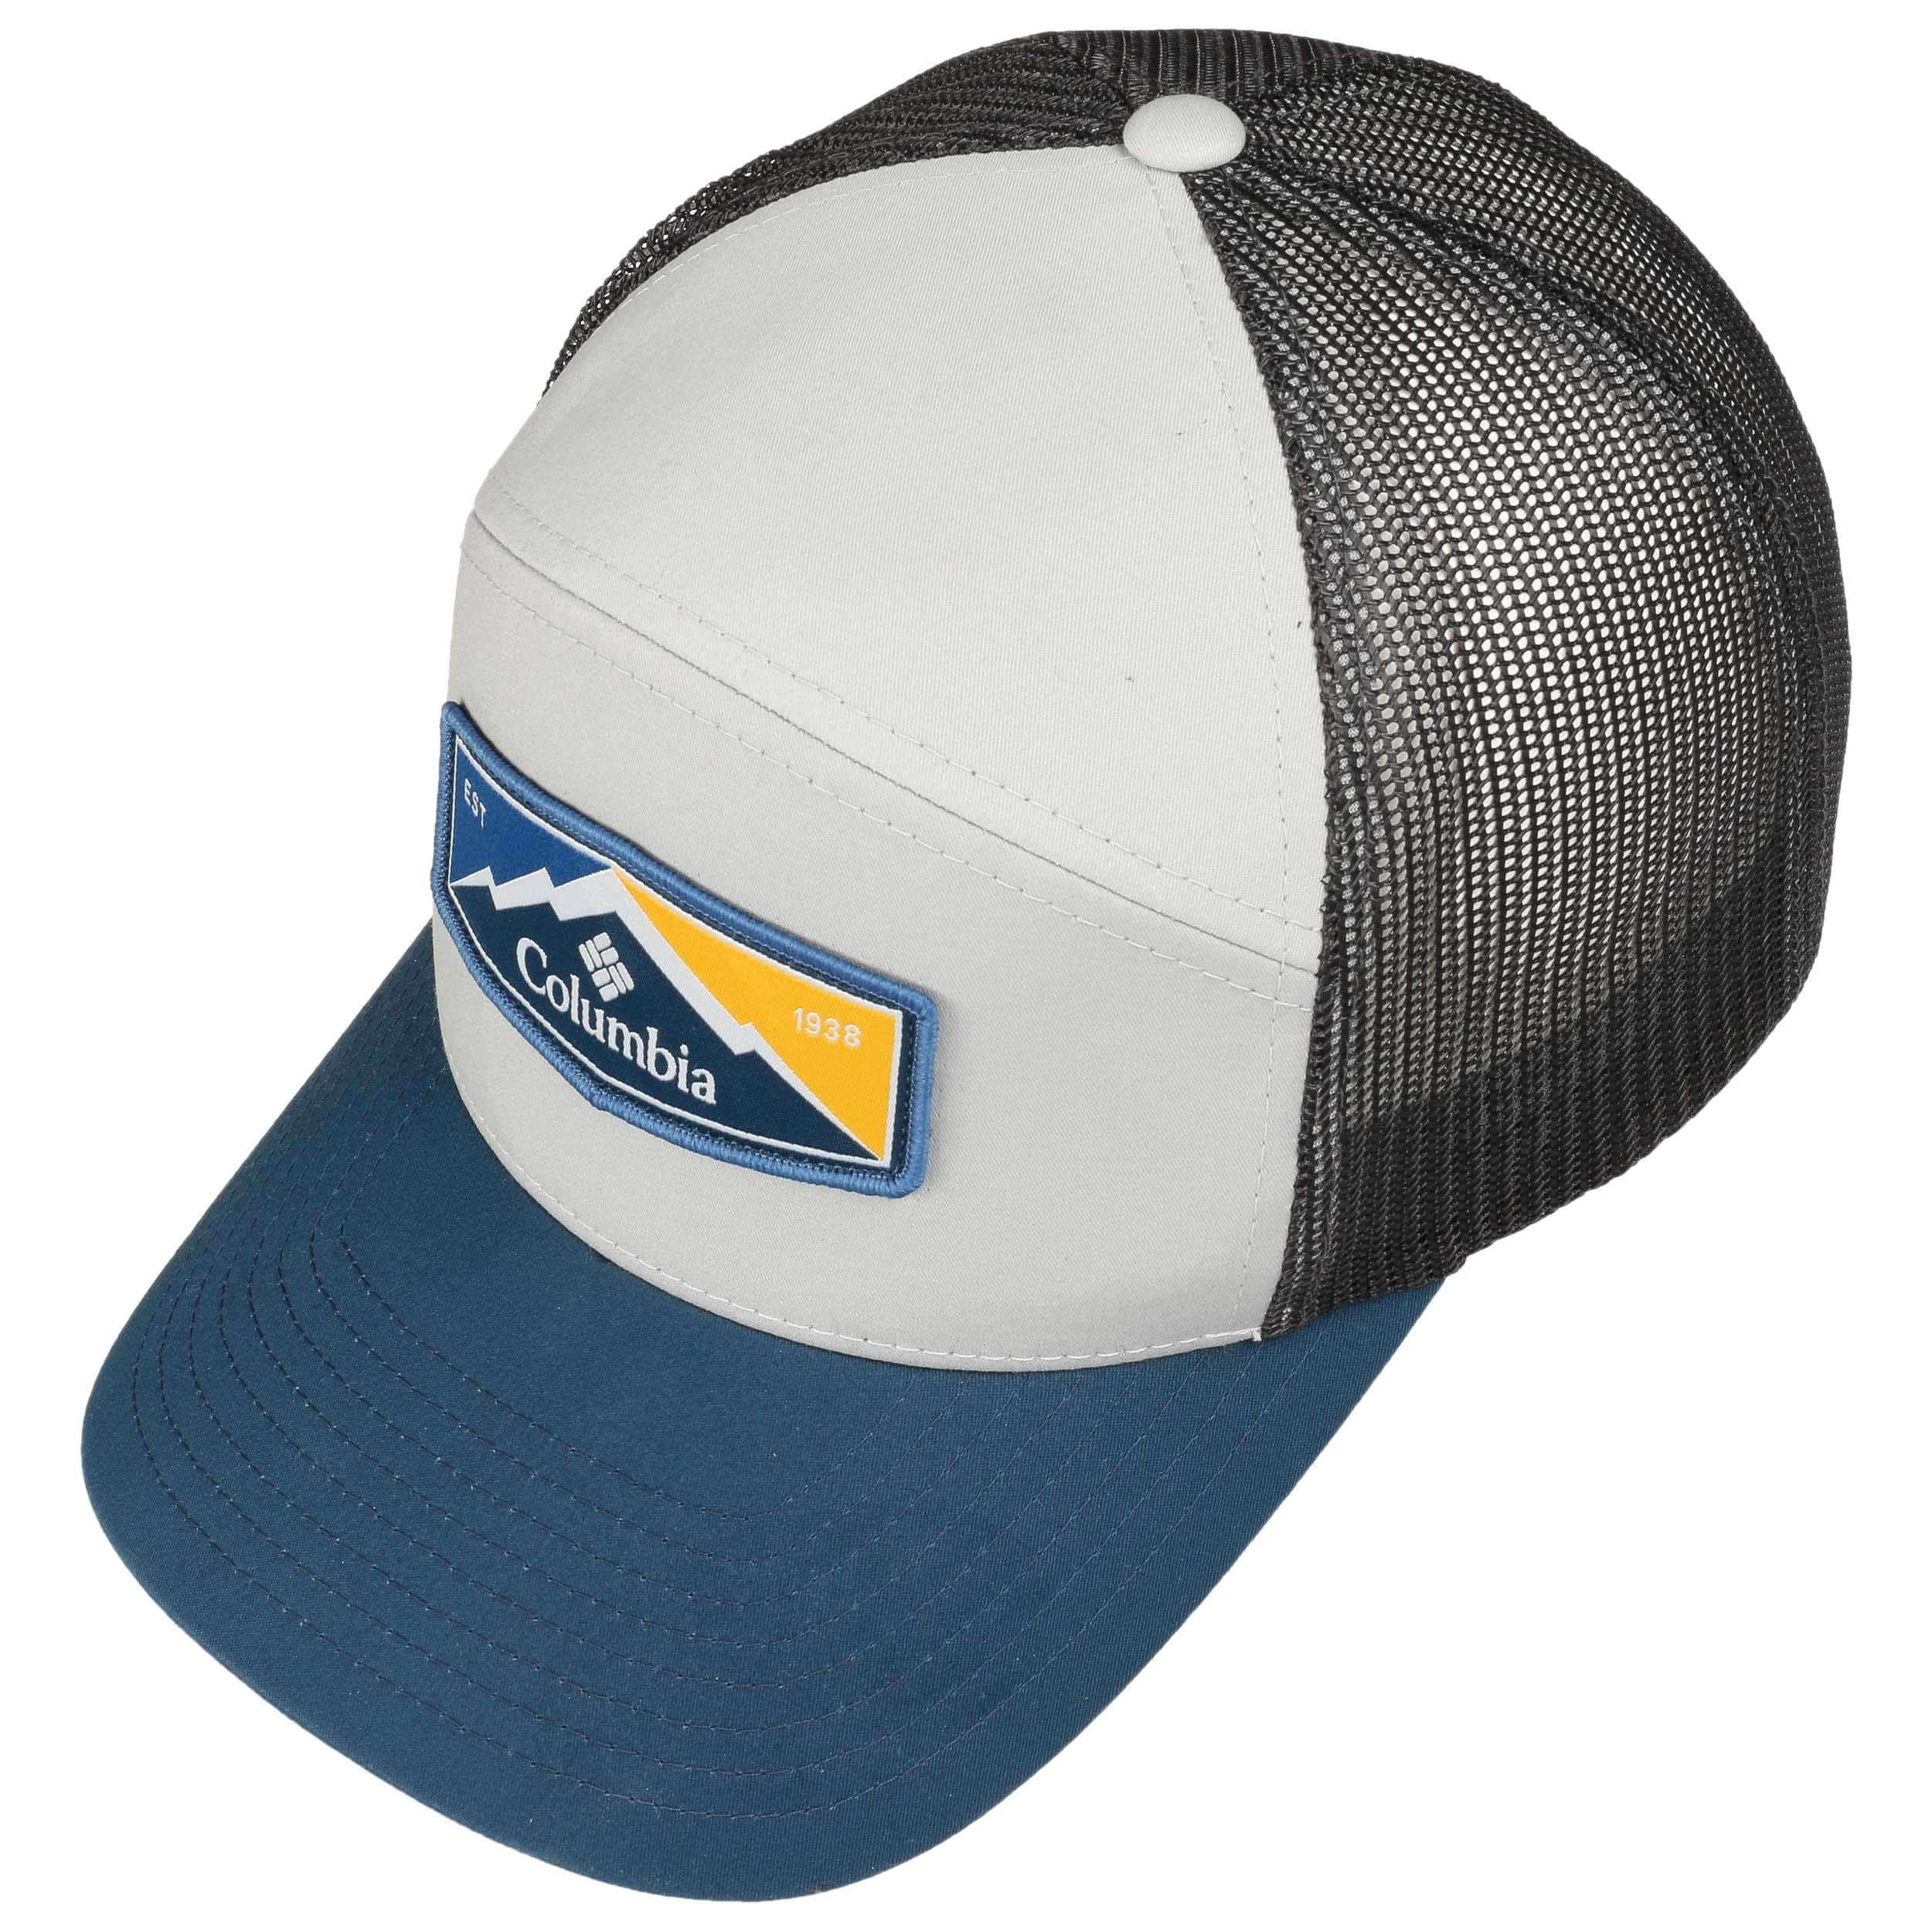 28f83d50910a4 Trail Evolution II Trucker Cap by Columbia - anthracite 1 ...